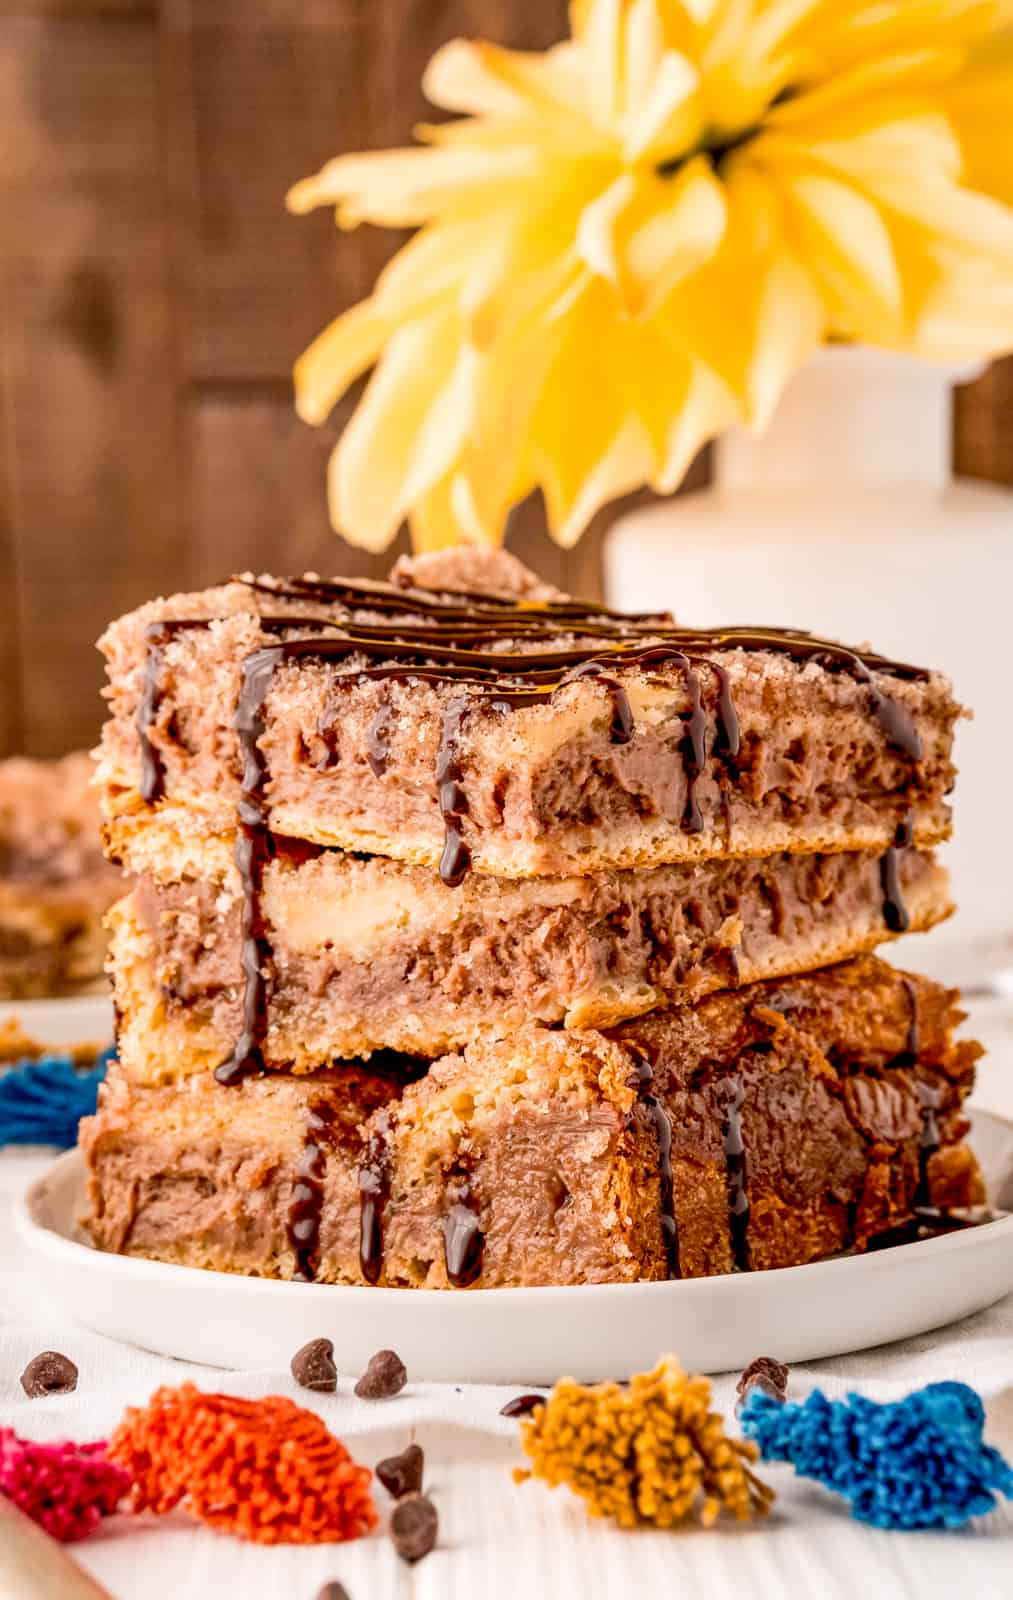 Chocolate Cheesecake Bars stacked three high and drizzled with chocolate syrup